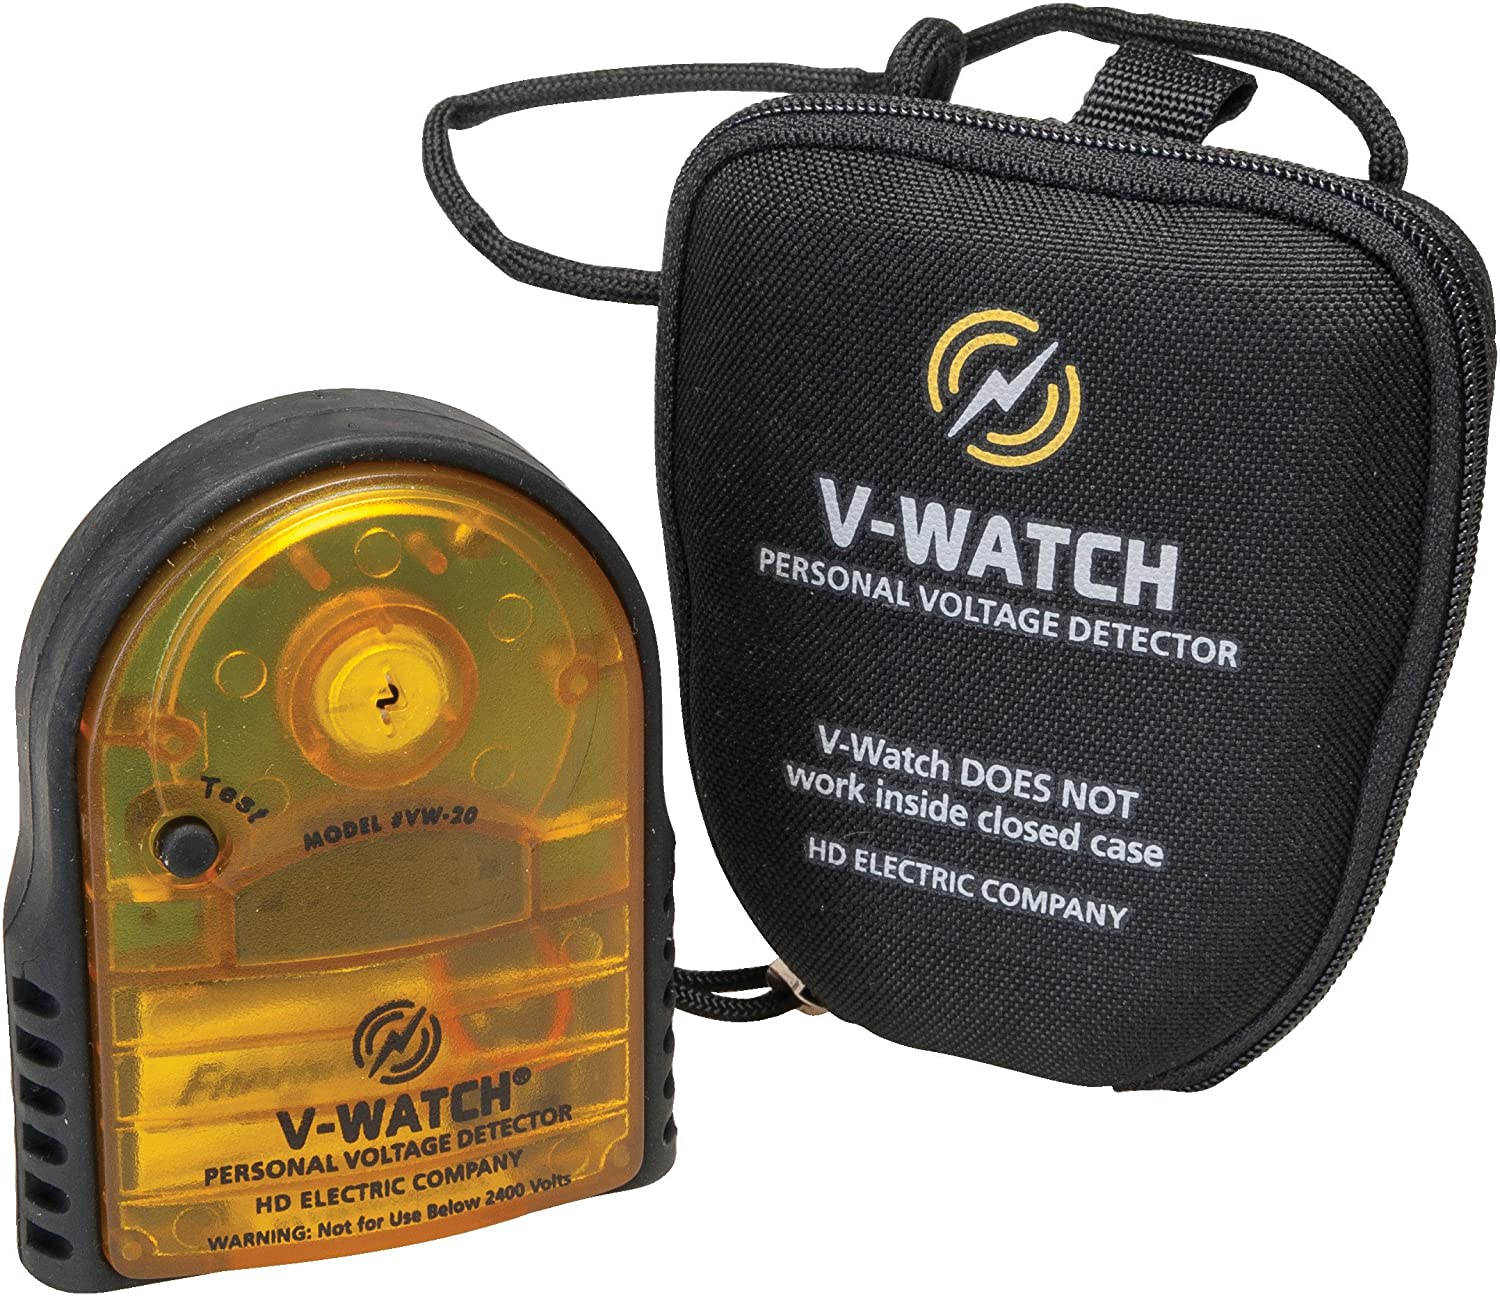 Greenlee HD Electric VW-20H V-Watch Personal Voltage Detector